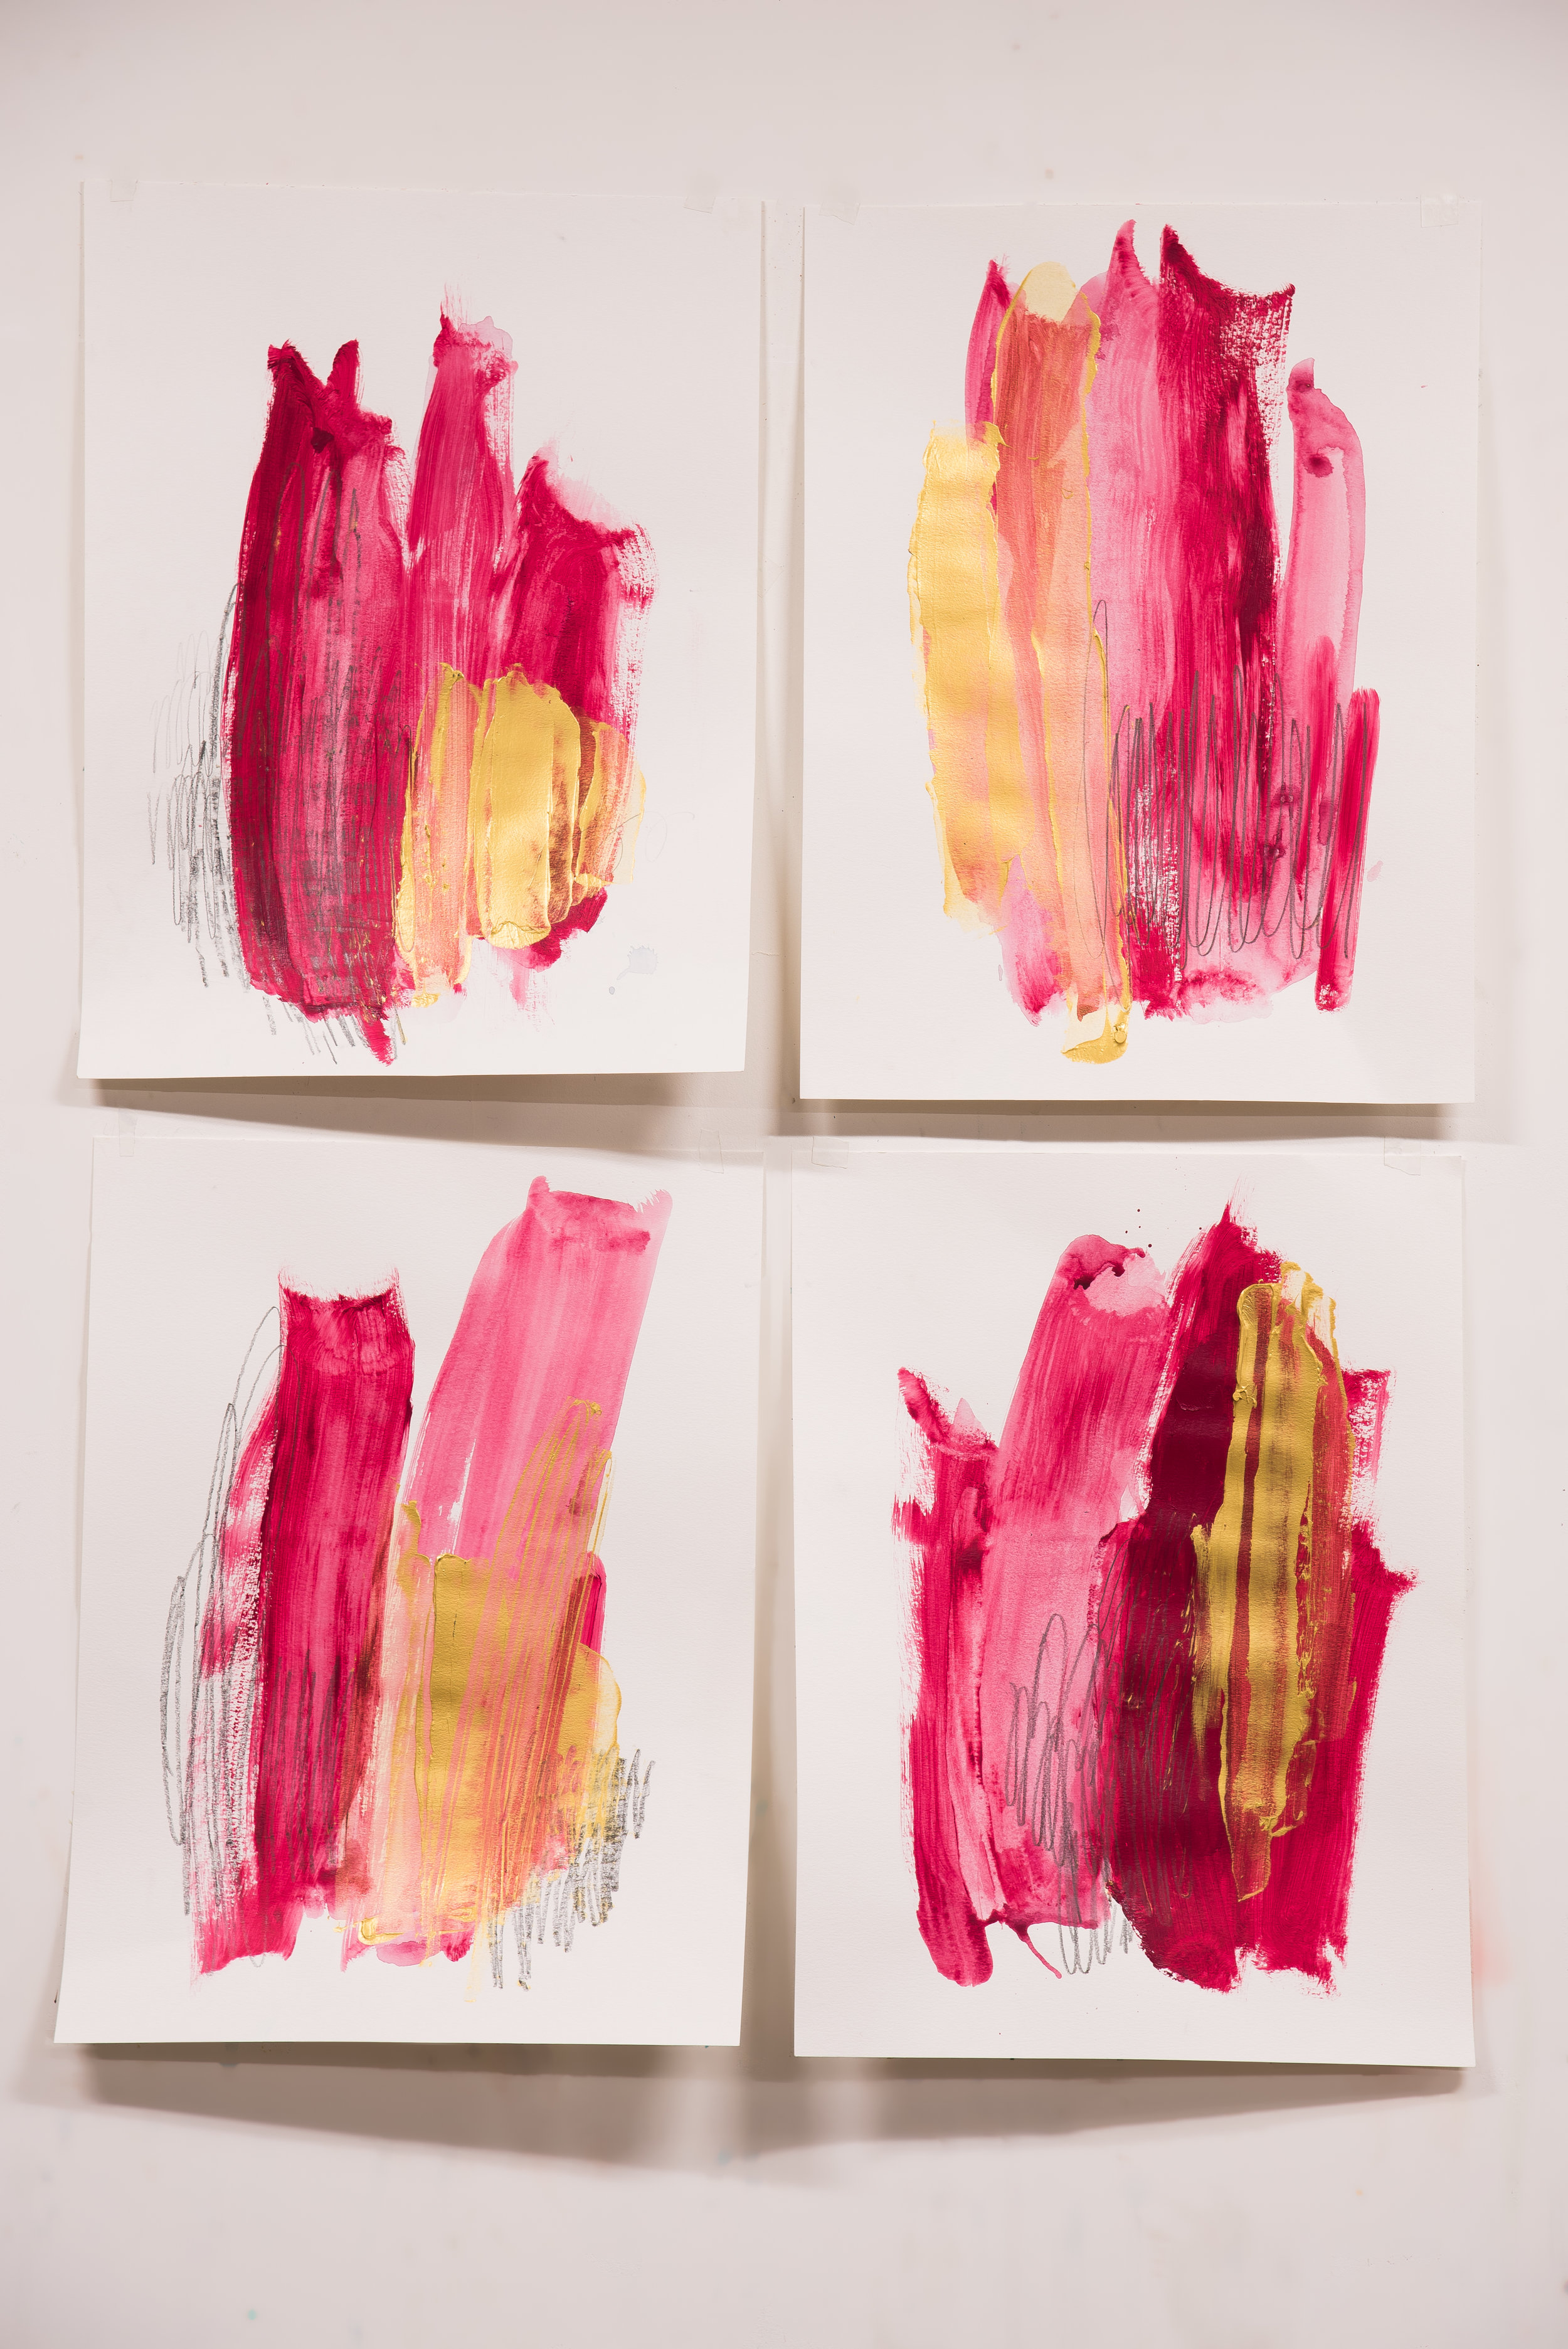 """So Fancy #1-4 , 18""""x24"""" each, acrylic + graphite on paper, 2018, #2-4 SOLD, #1 available"""